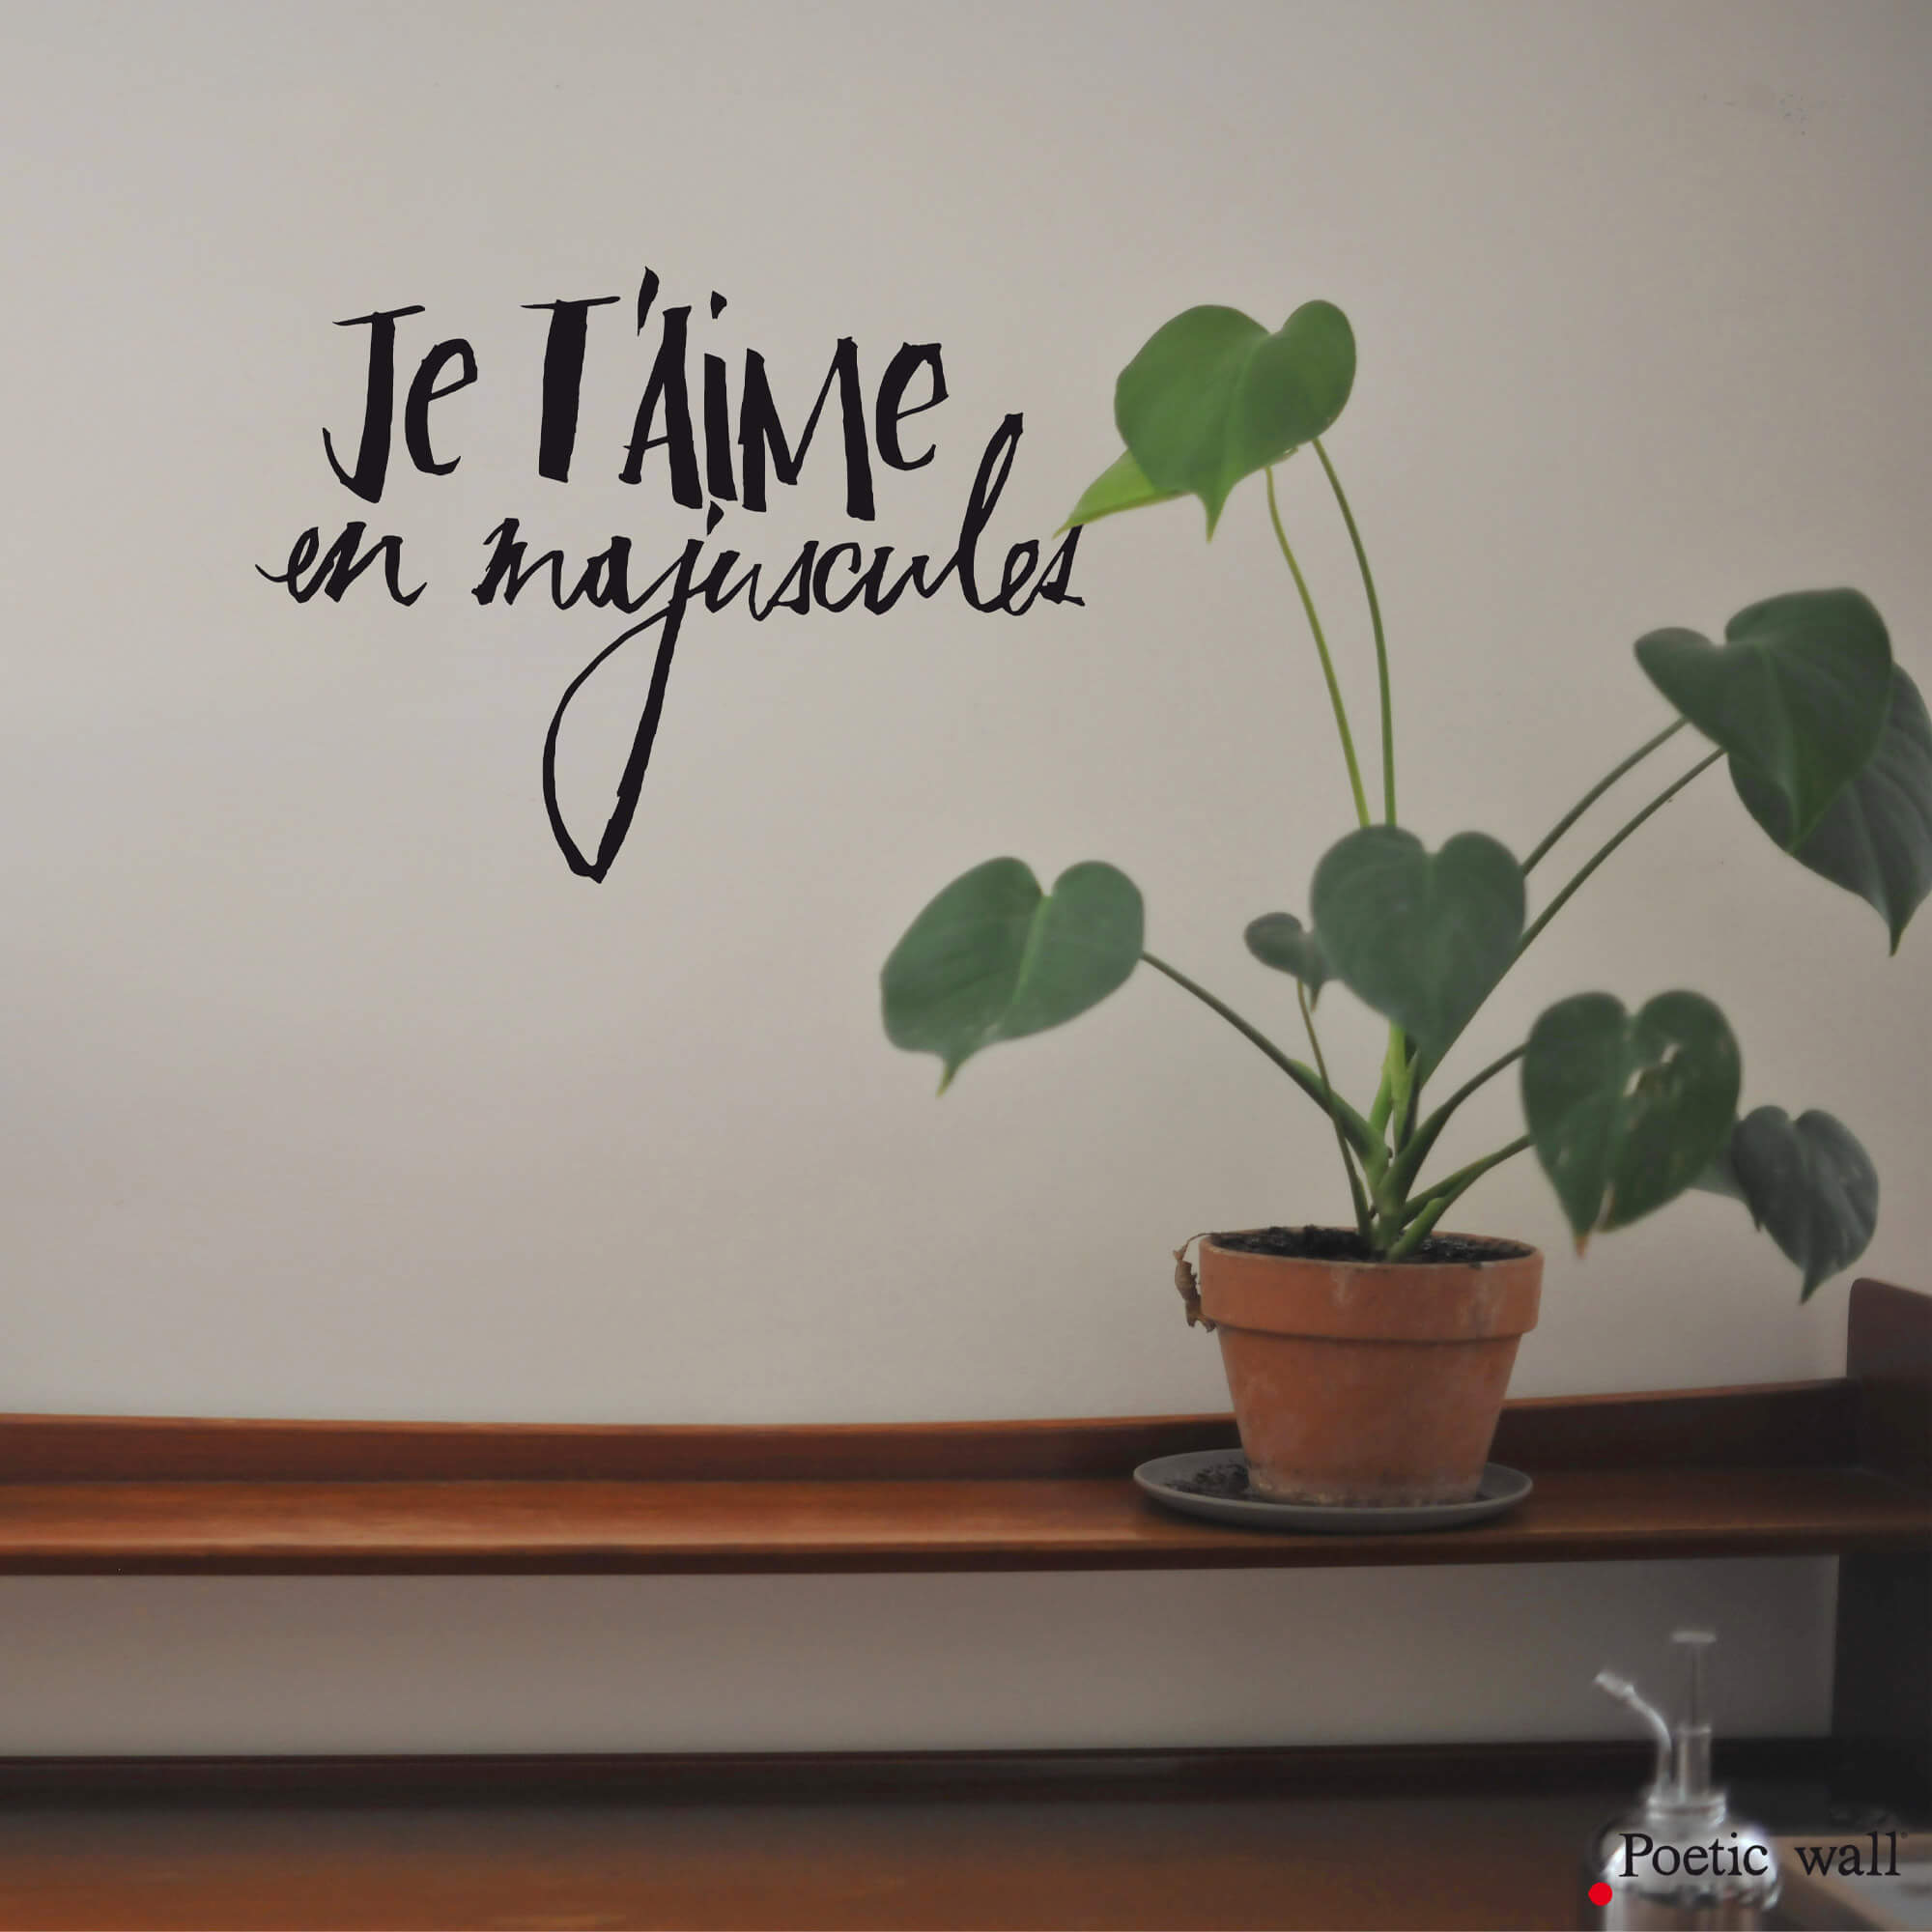 stickers textes originaux by Poetic Wall je t'aime en majuscules